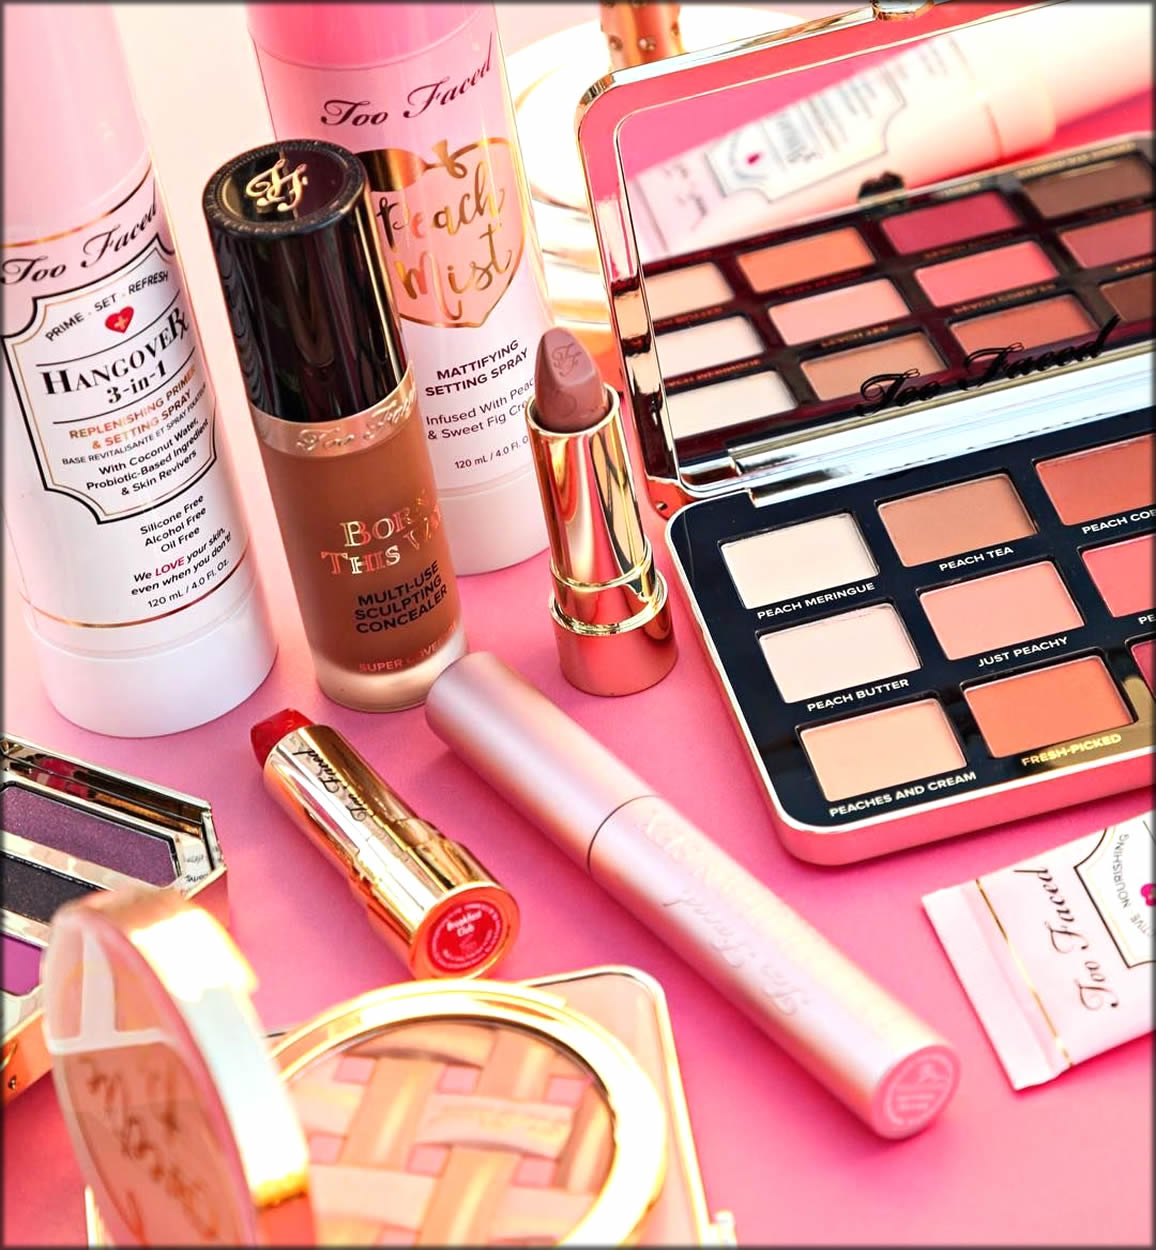 Cosmetics by Too Faced Best Makeup Brands